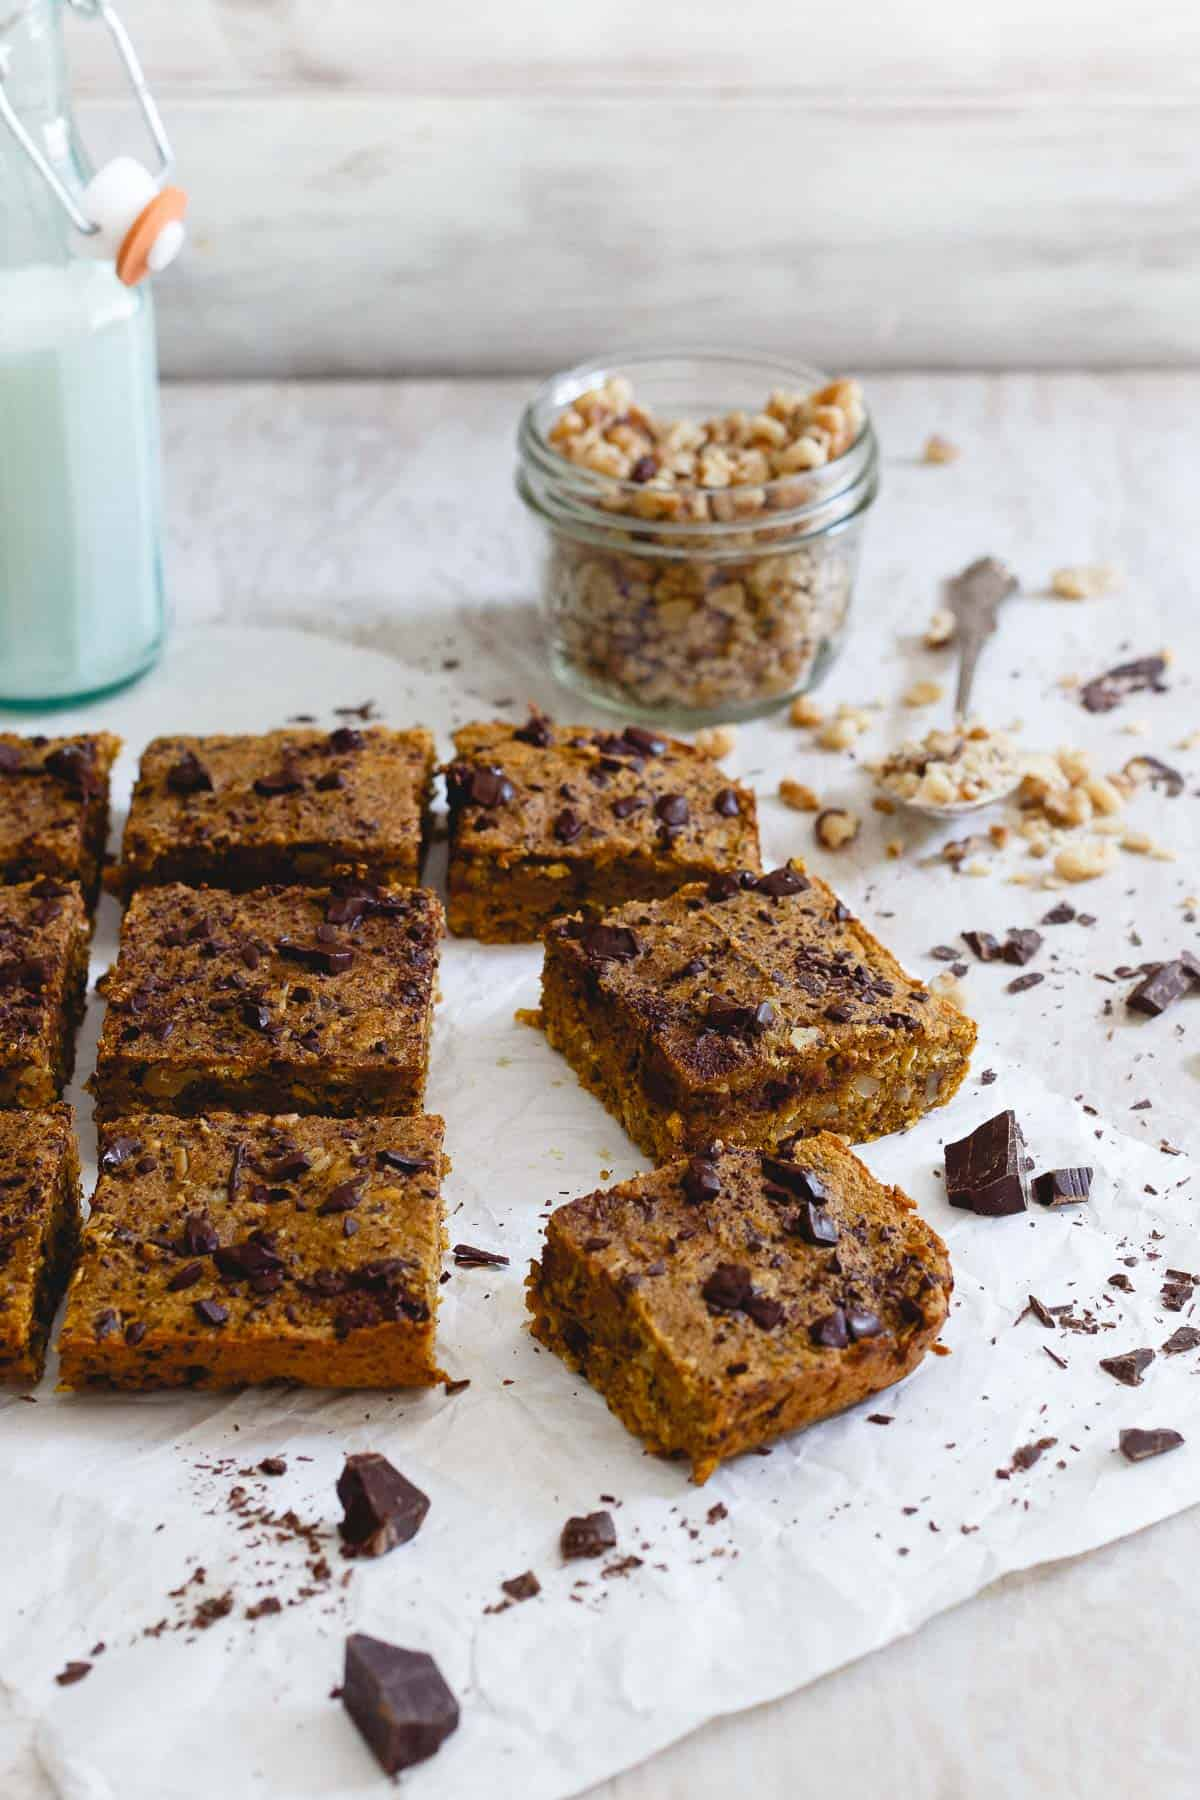 These pumpkin chocolate chip bars are a quick and easy fall treat. They're chewy, dense and perfect with a cold glass of milk.